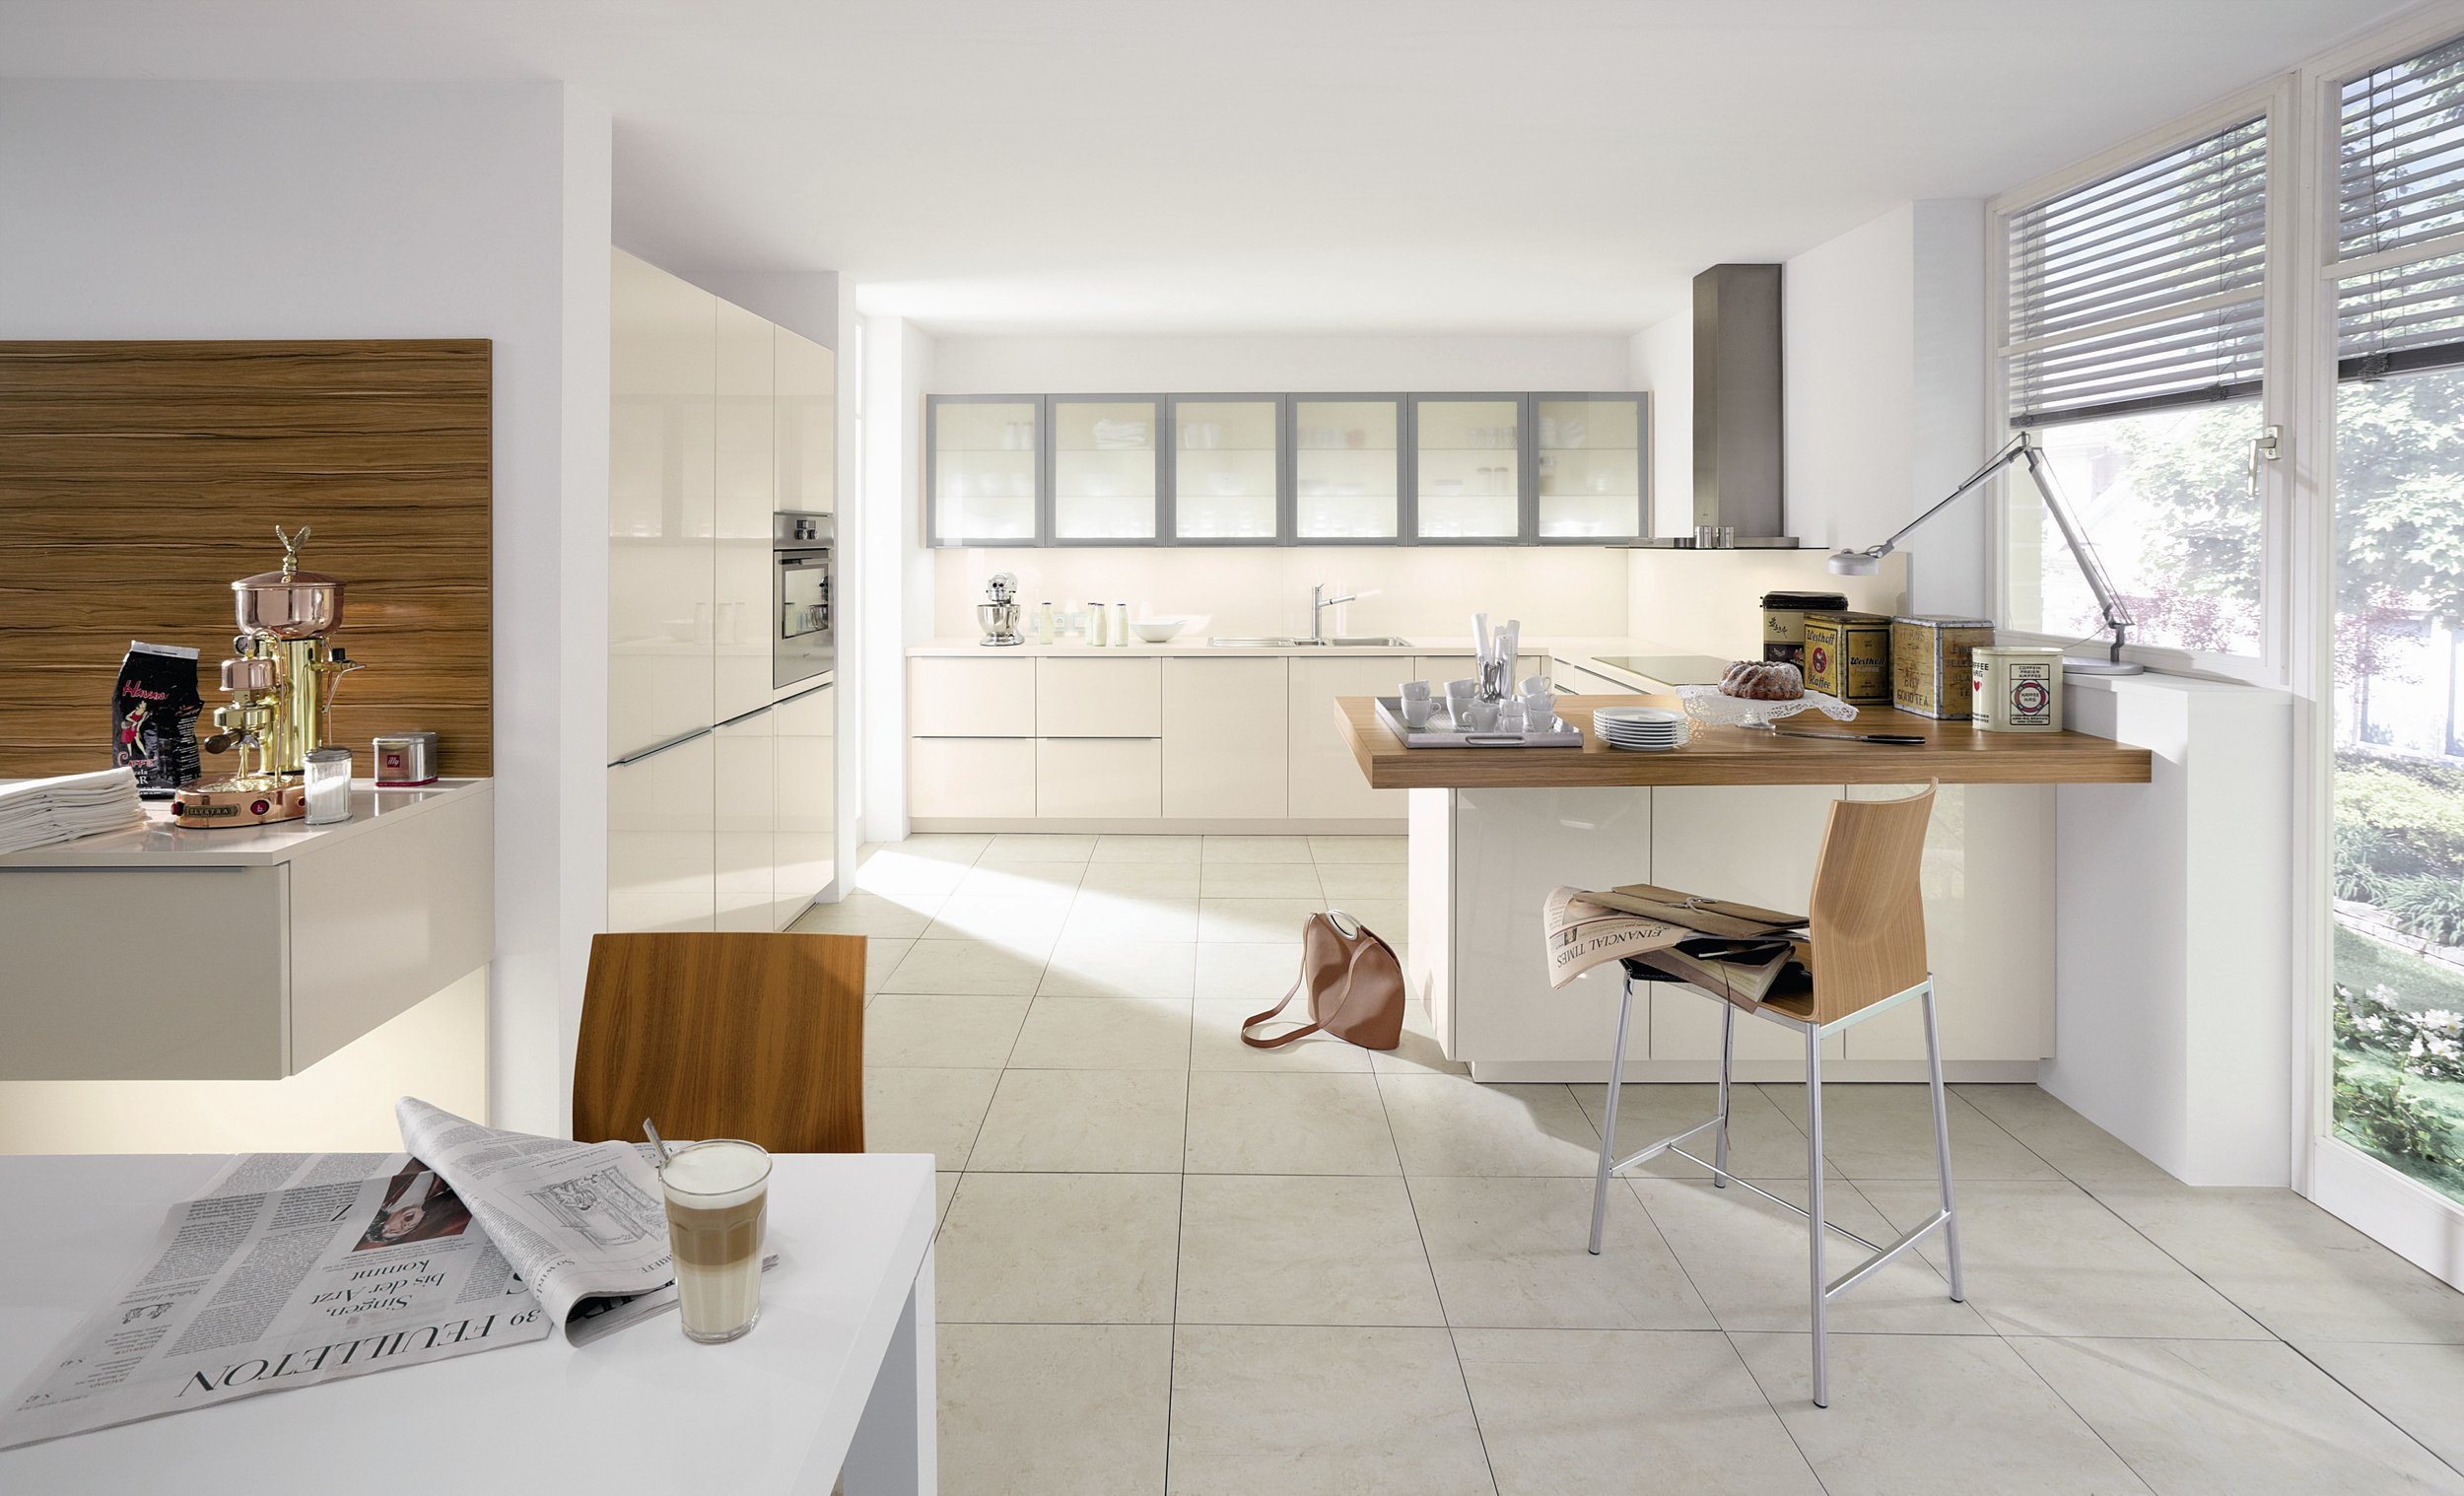 Contemporary style kitchen with white tiled floor